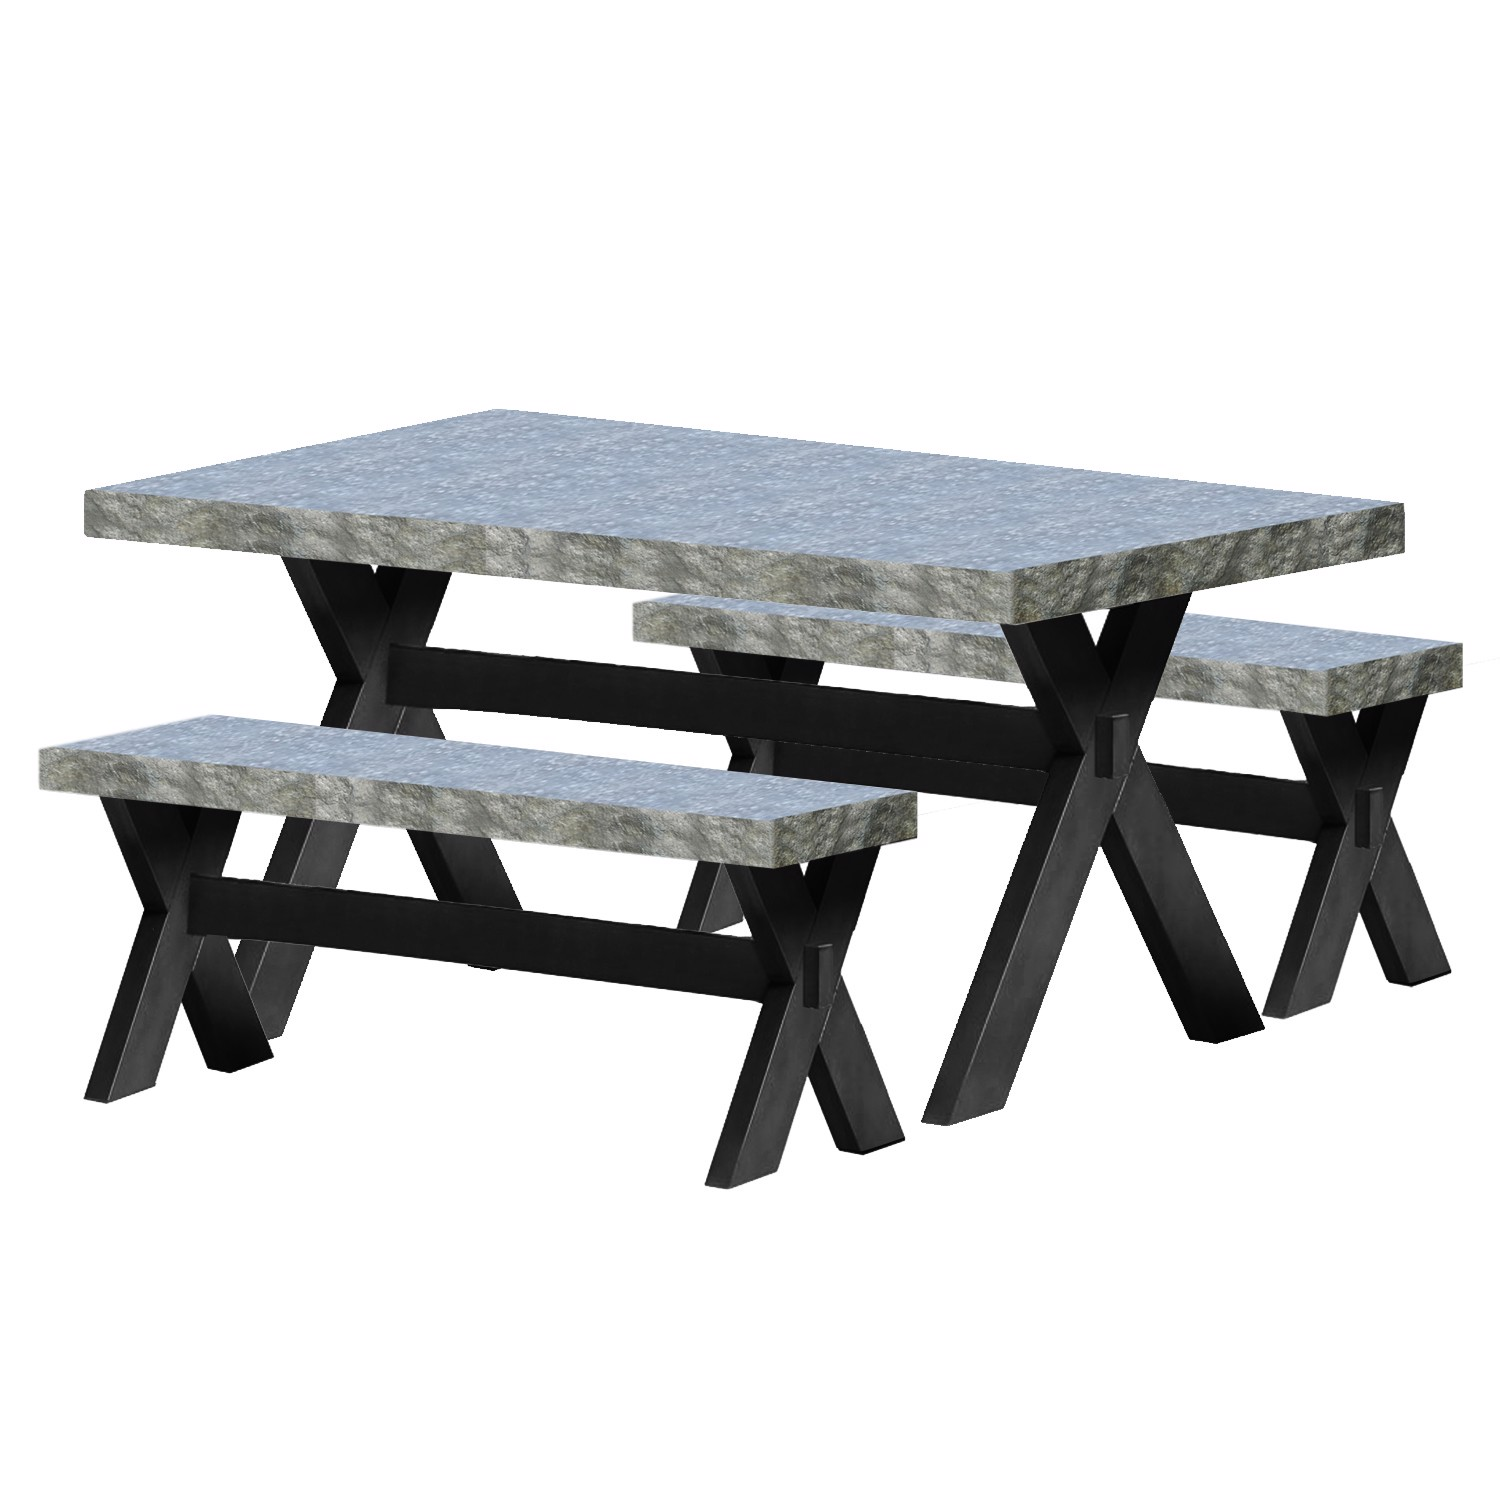 Dining table Set <br/> IDT7136